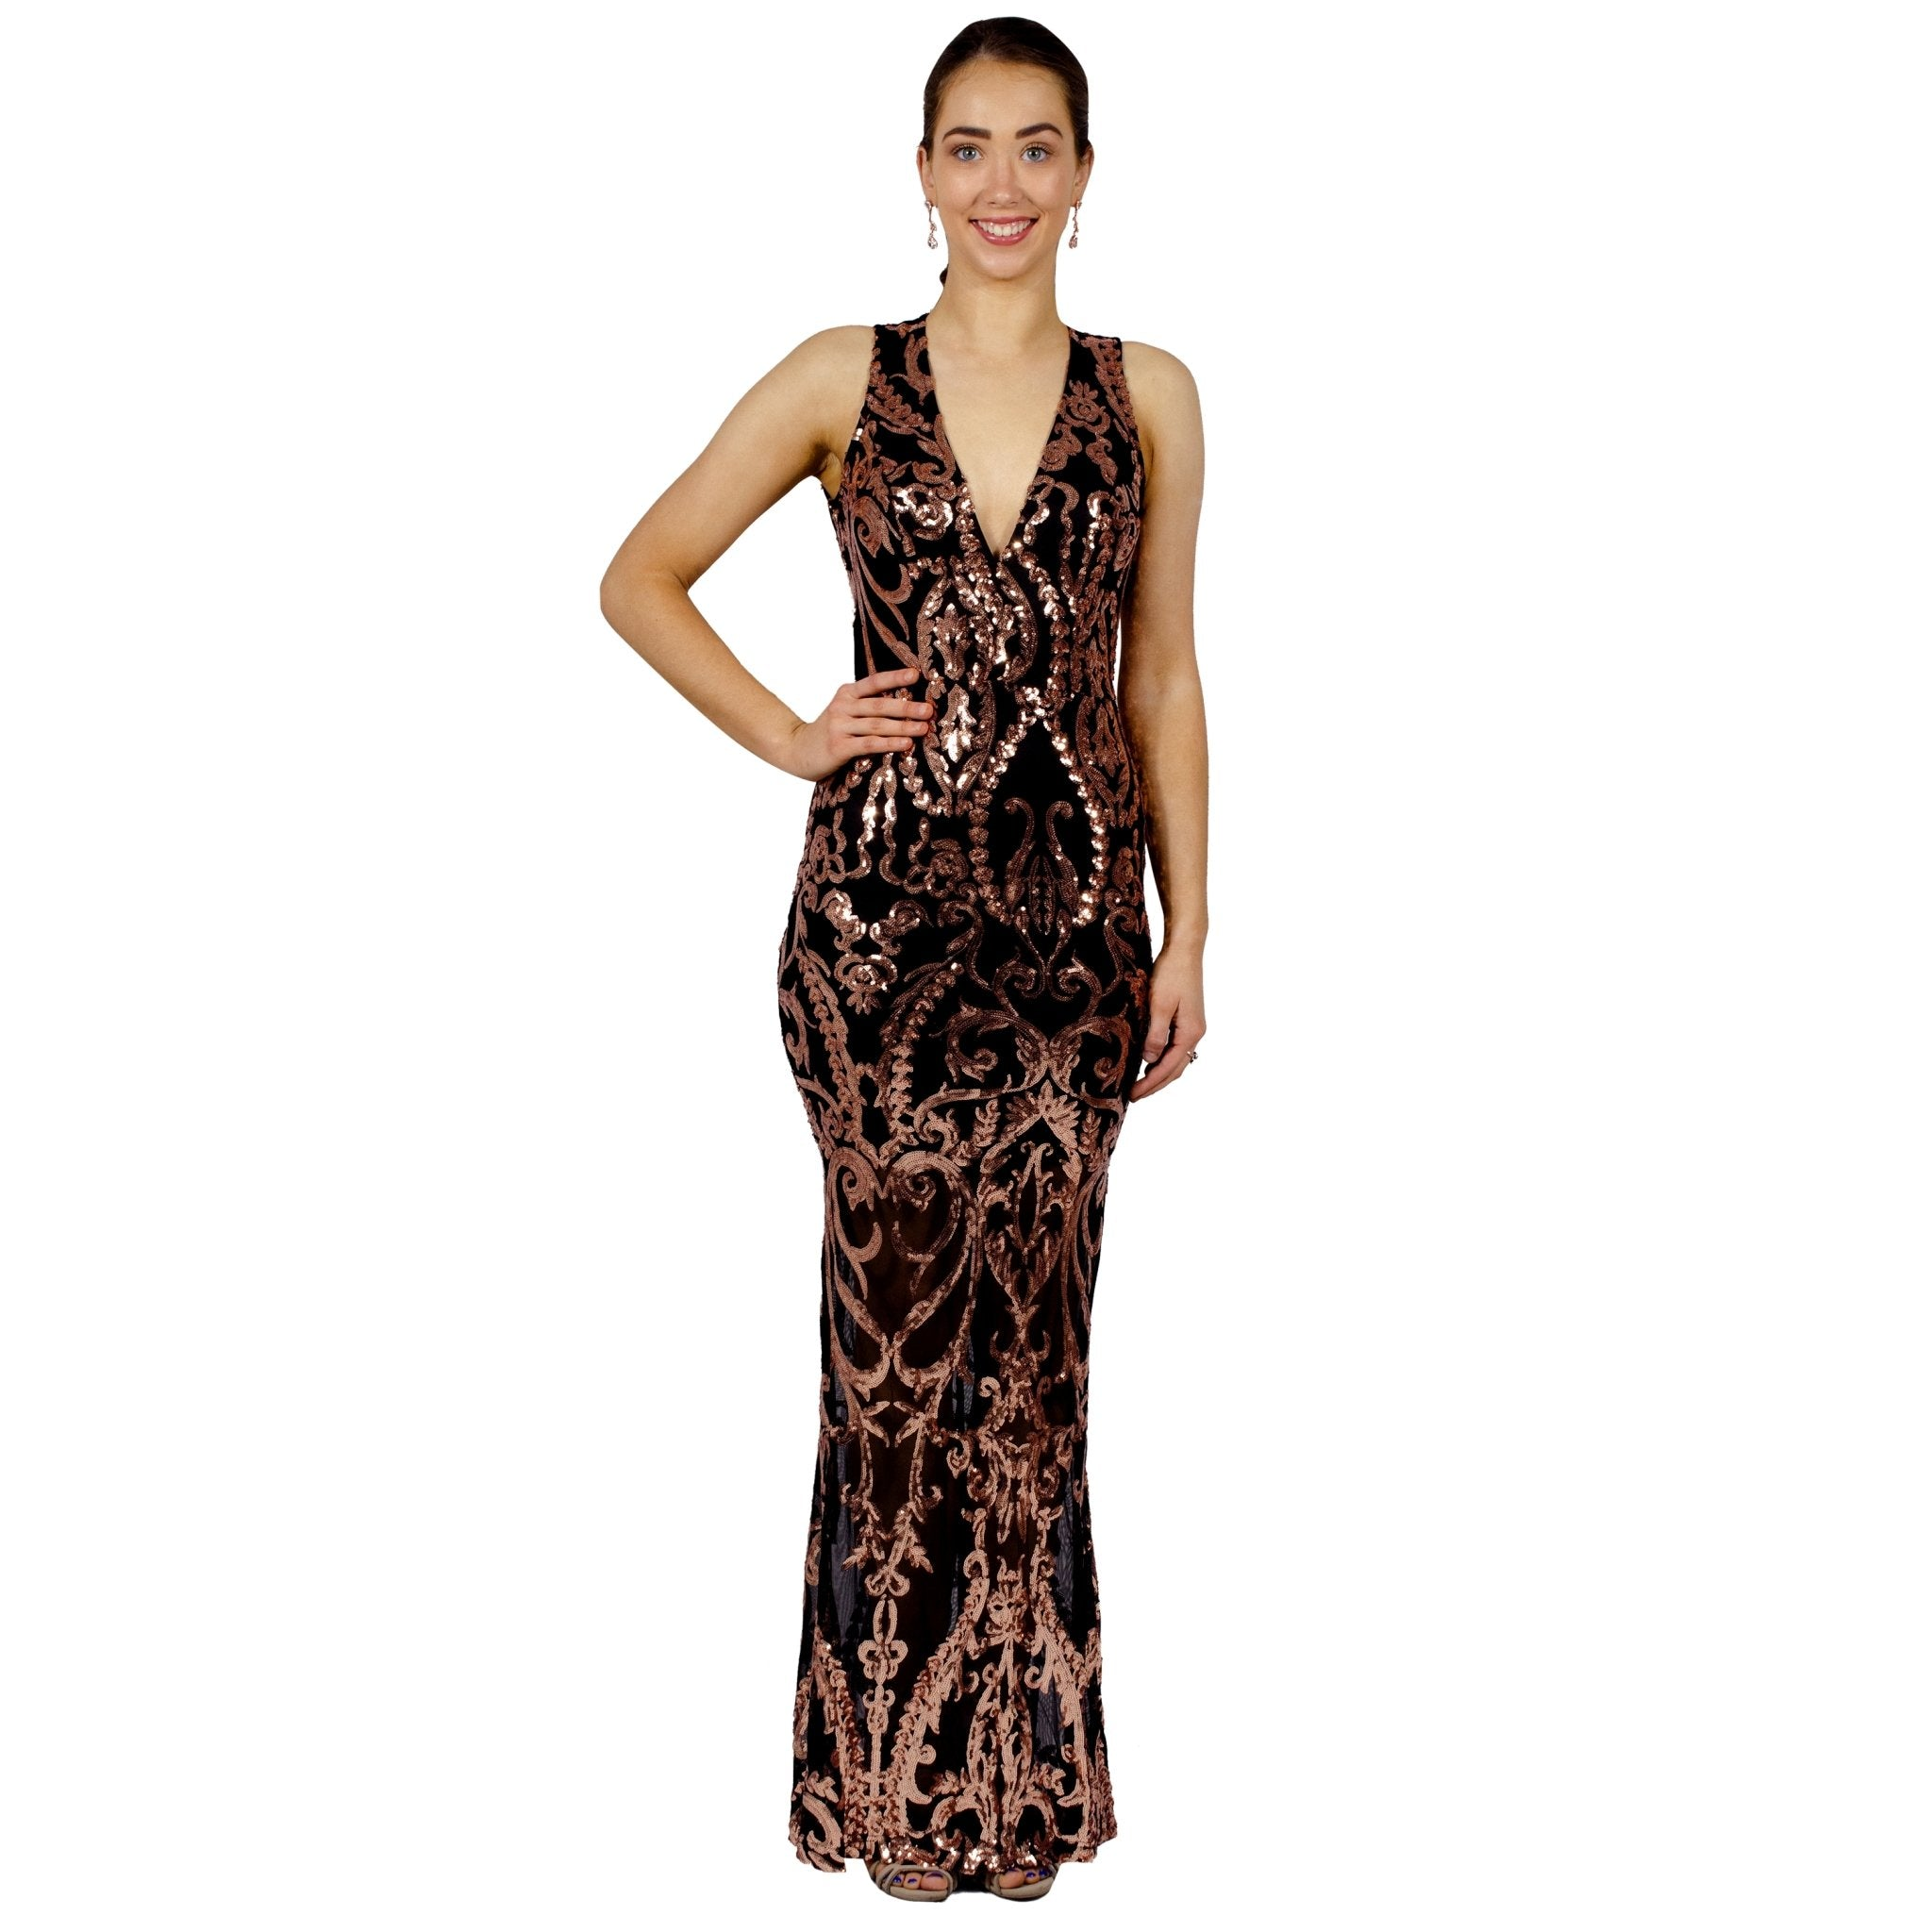 Rose Gold Sequin Backless Evening Gowns Perth Envious Bridal & Formal